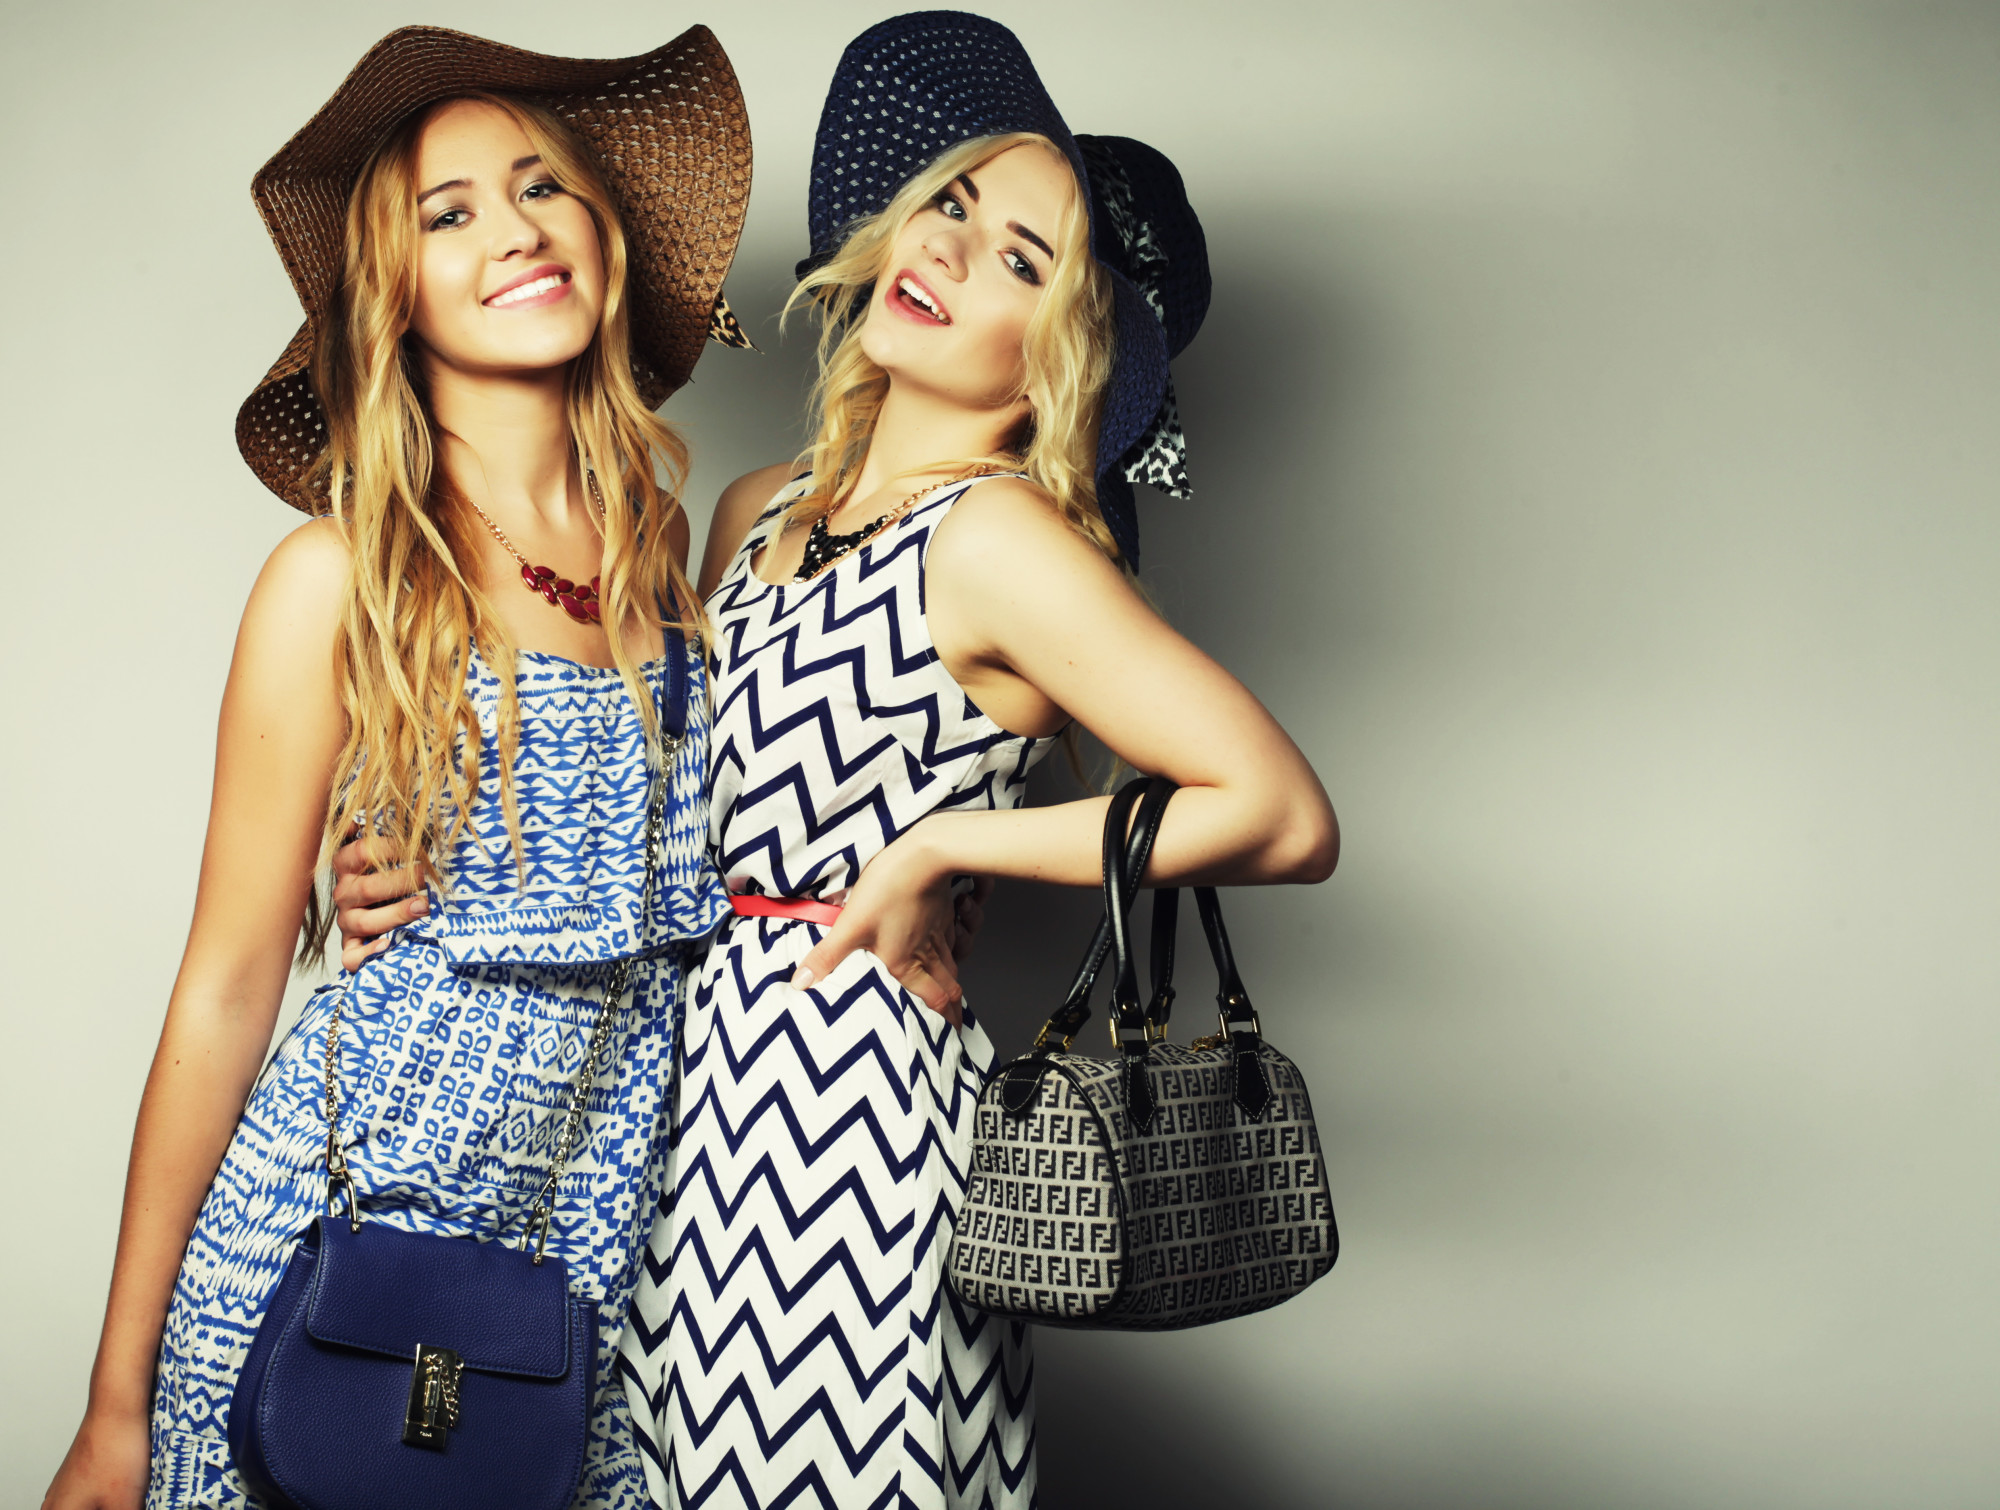 Looking Your Best: 7 Pro Tips for How to Look Stylish